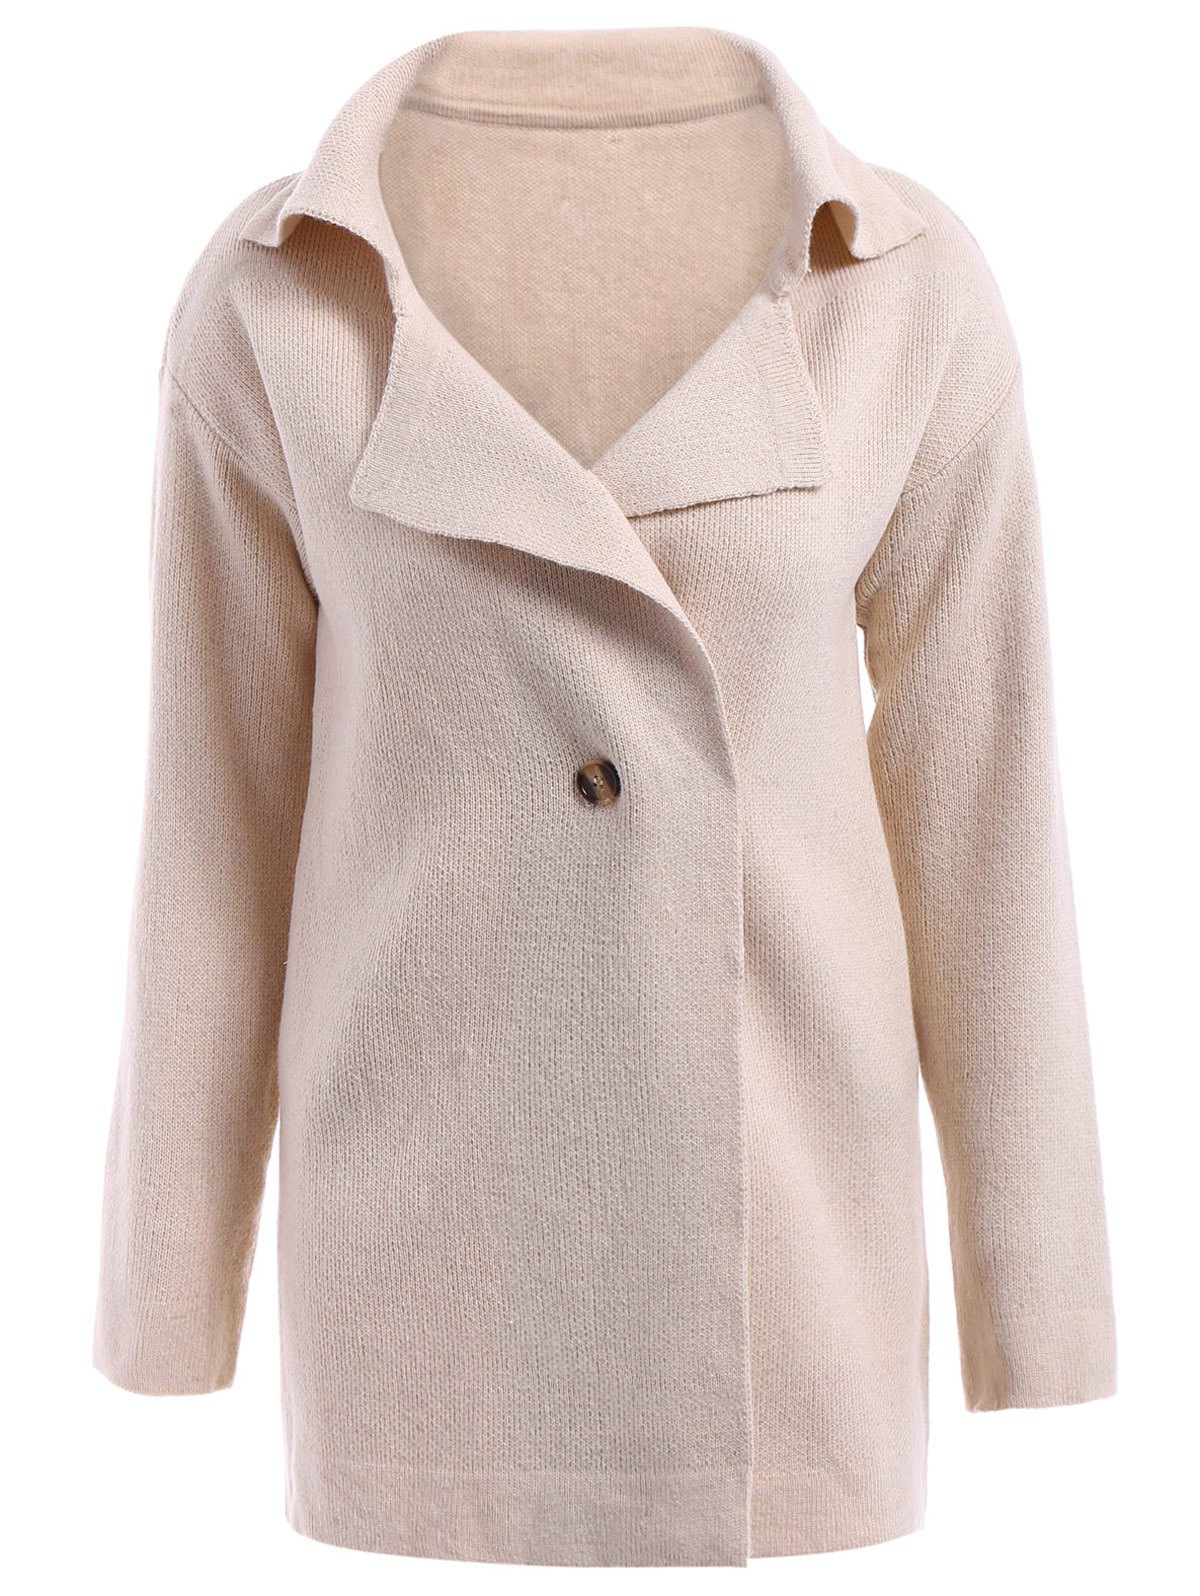 Cheap Casual Turn-Down Collar Loose-Fitting Solid Color Long Sleeve Women's Cardigan